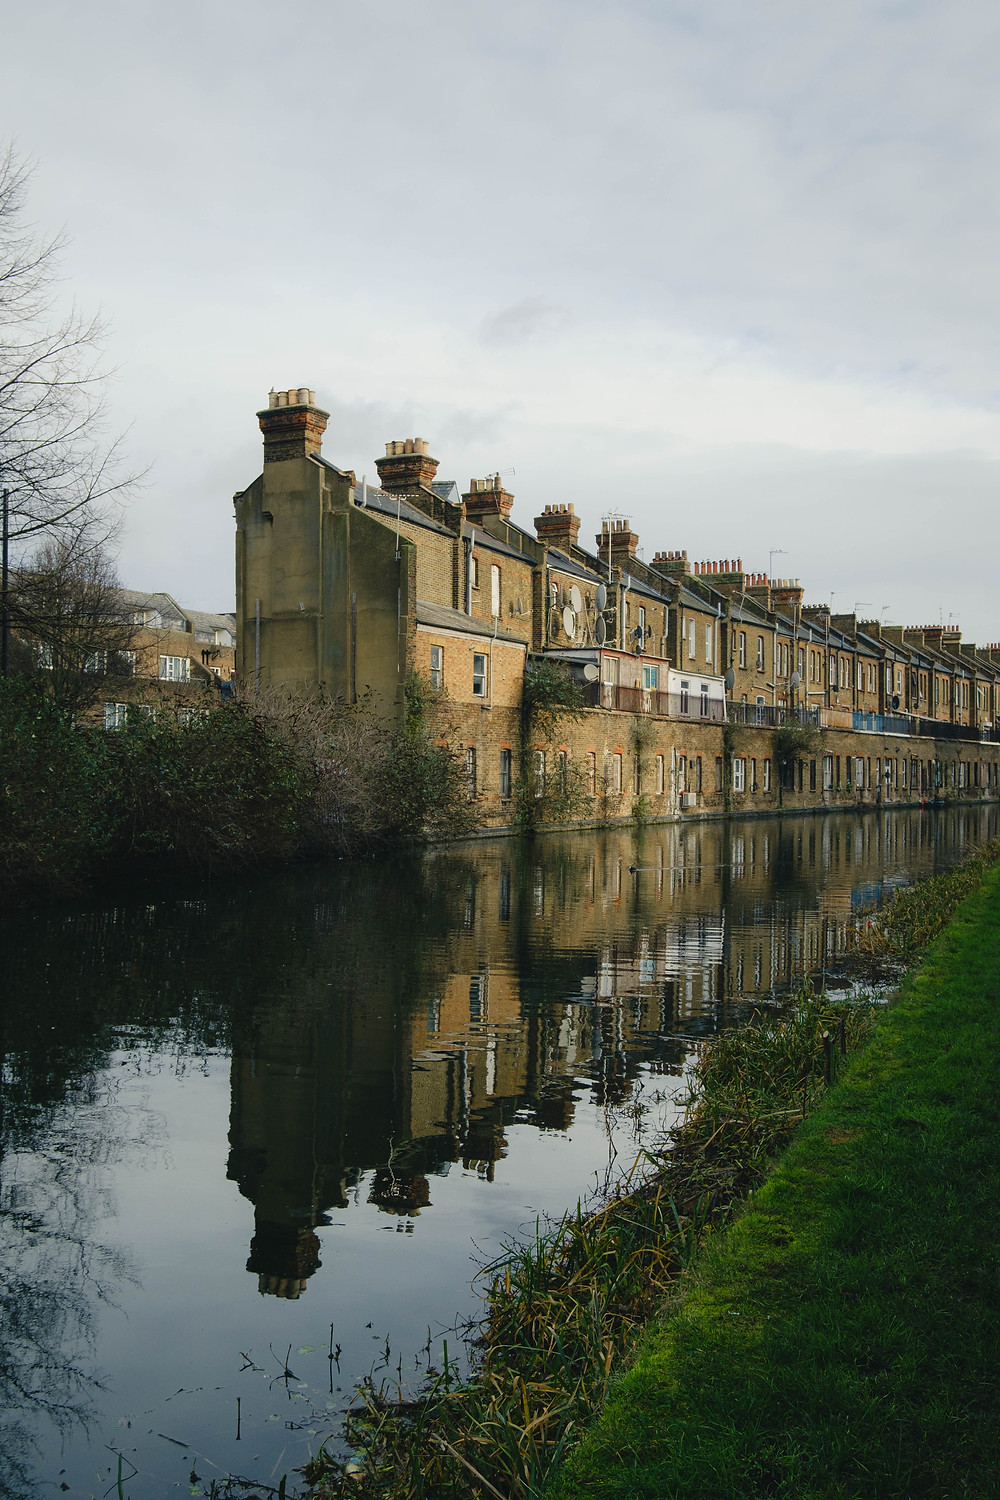 Photograph of the Grand Union Canal